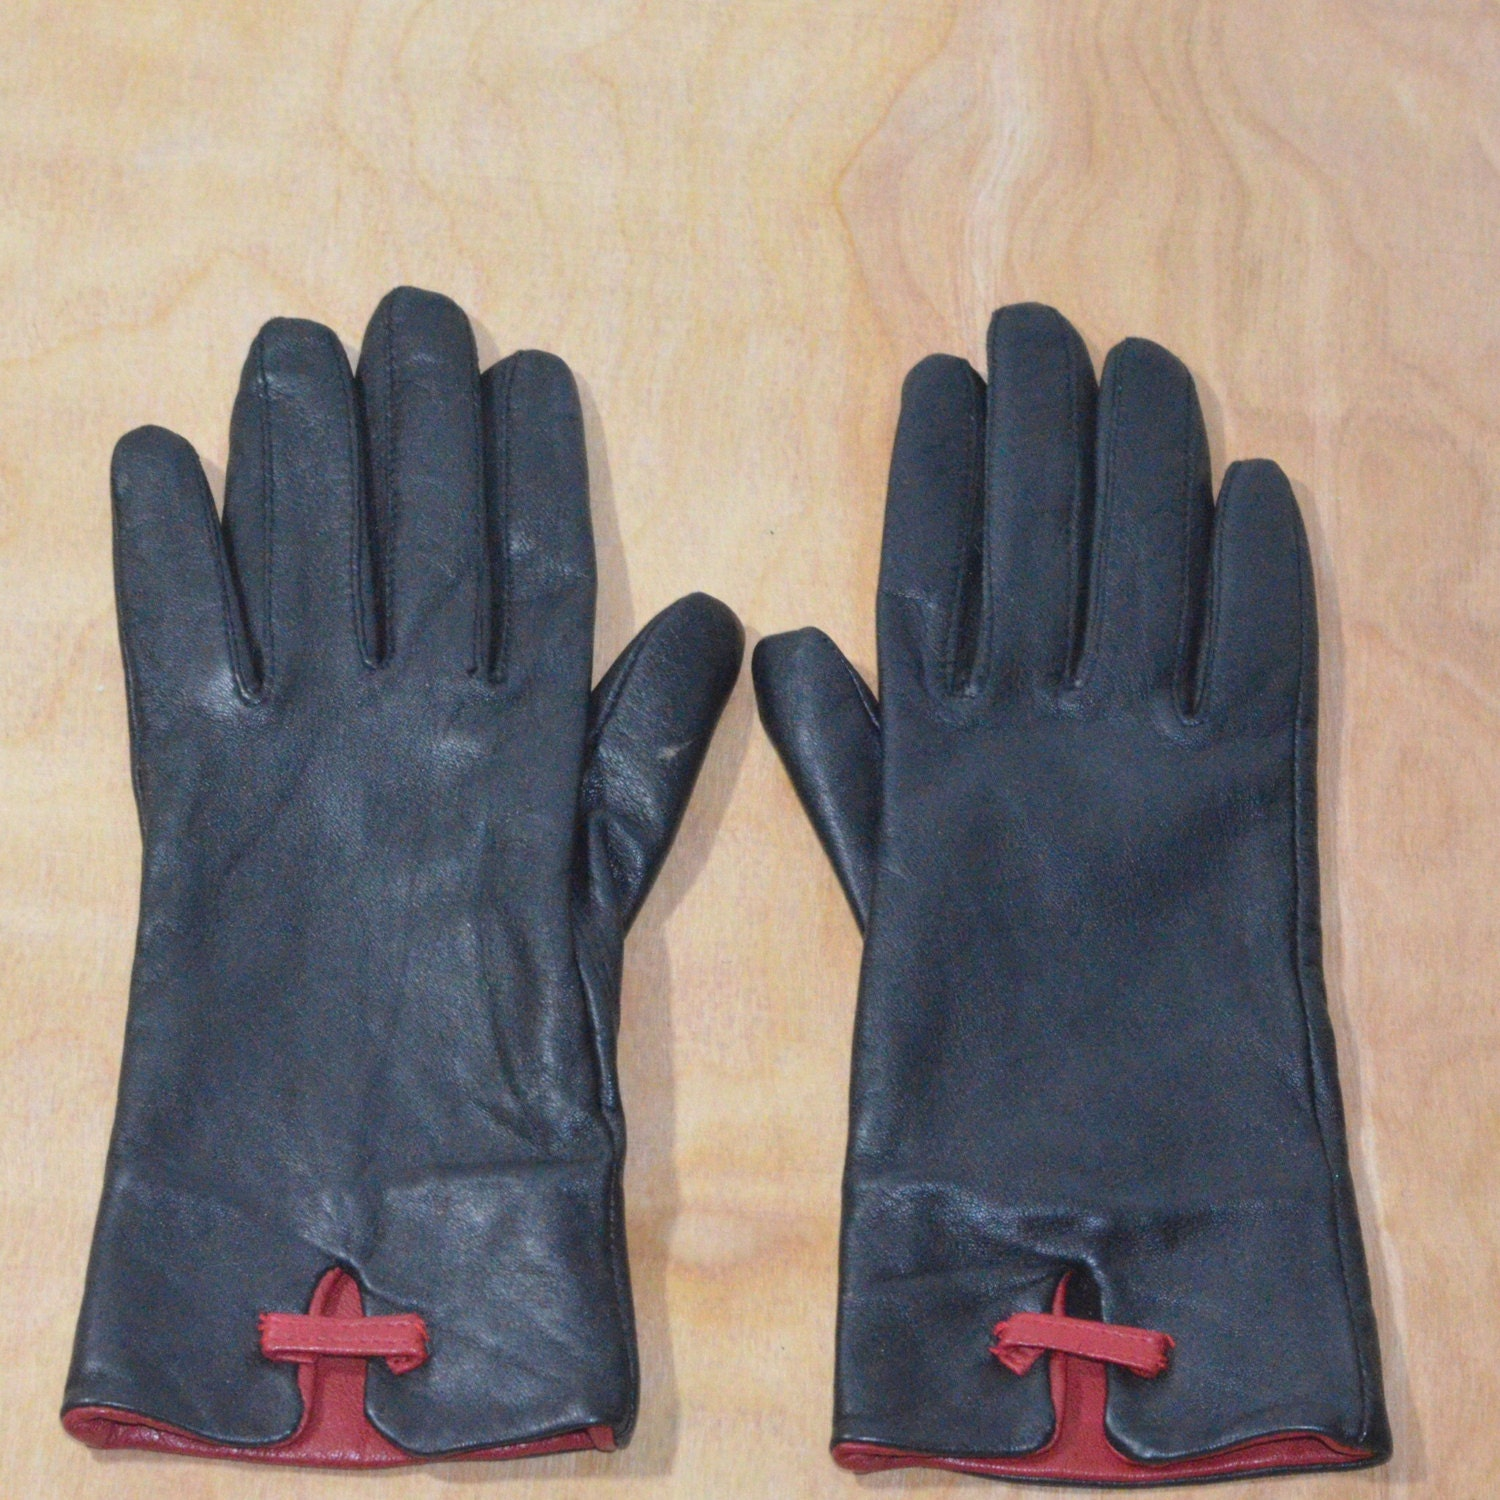 Cole haan black leather gloves - Cole Haan Black Leather Gloves 48